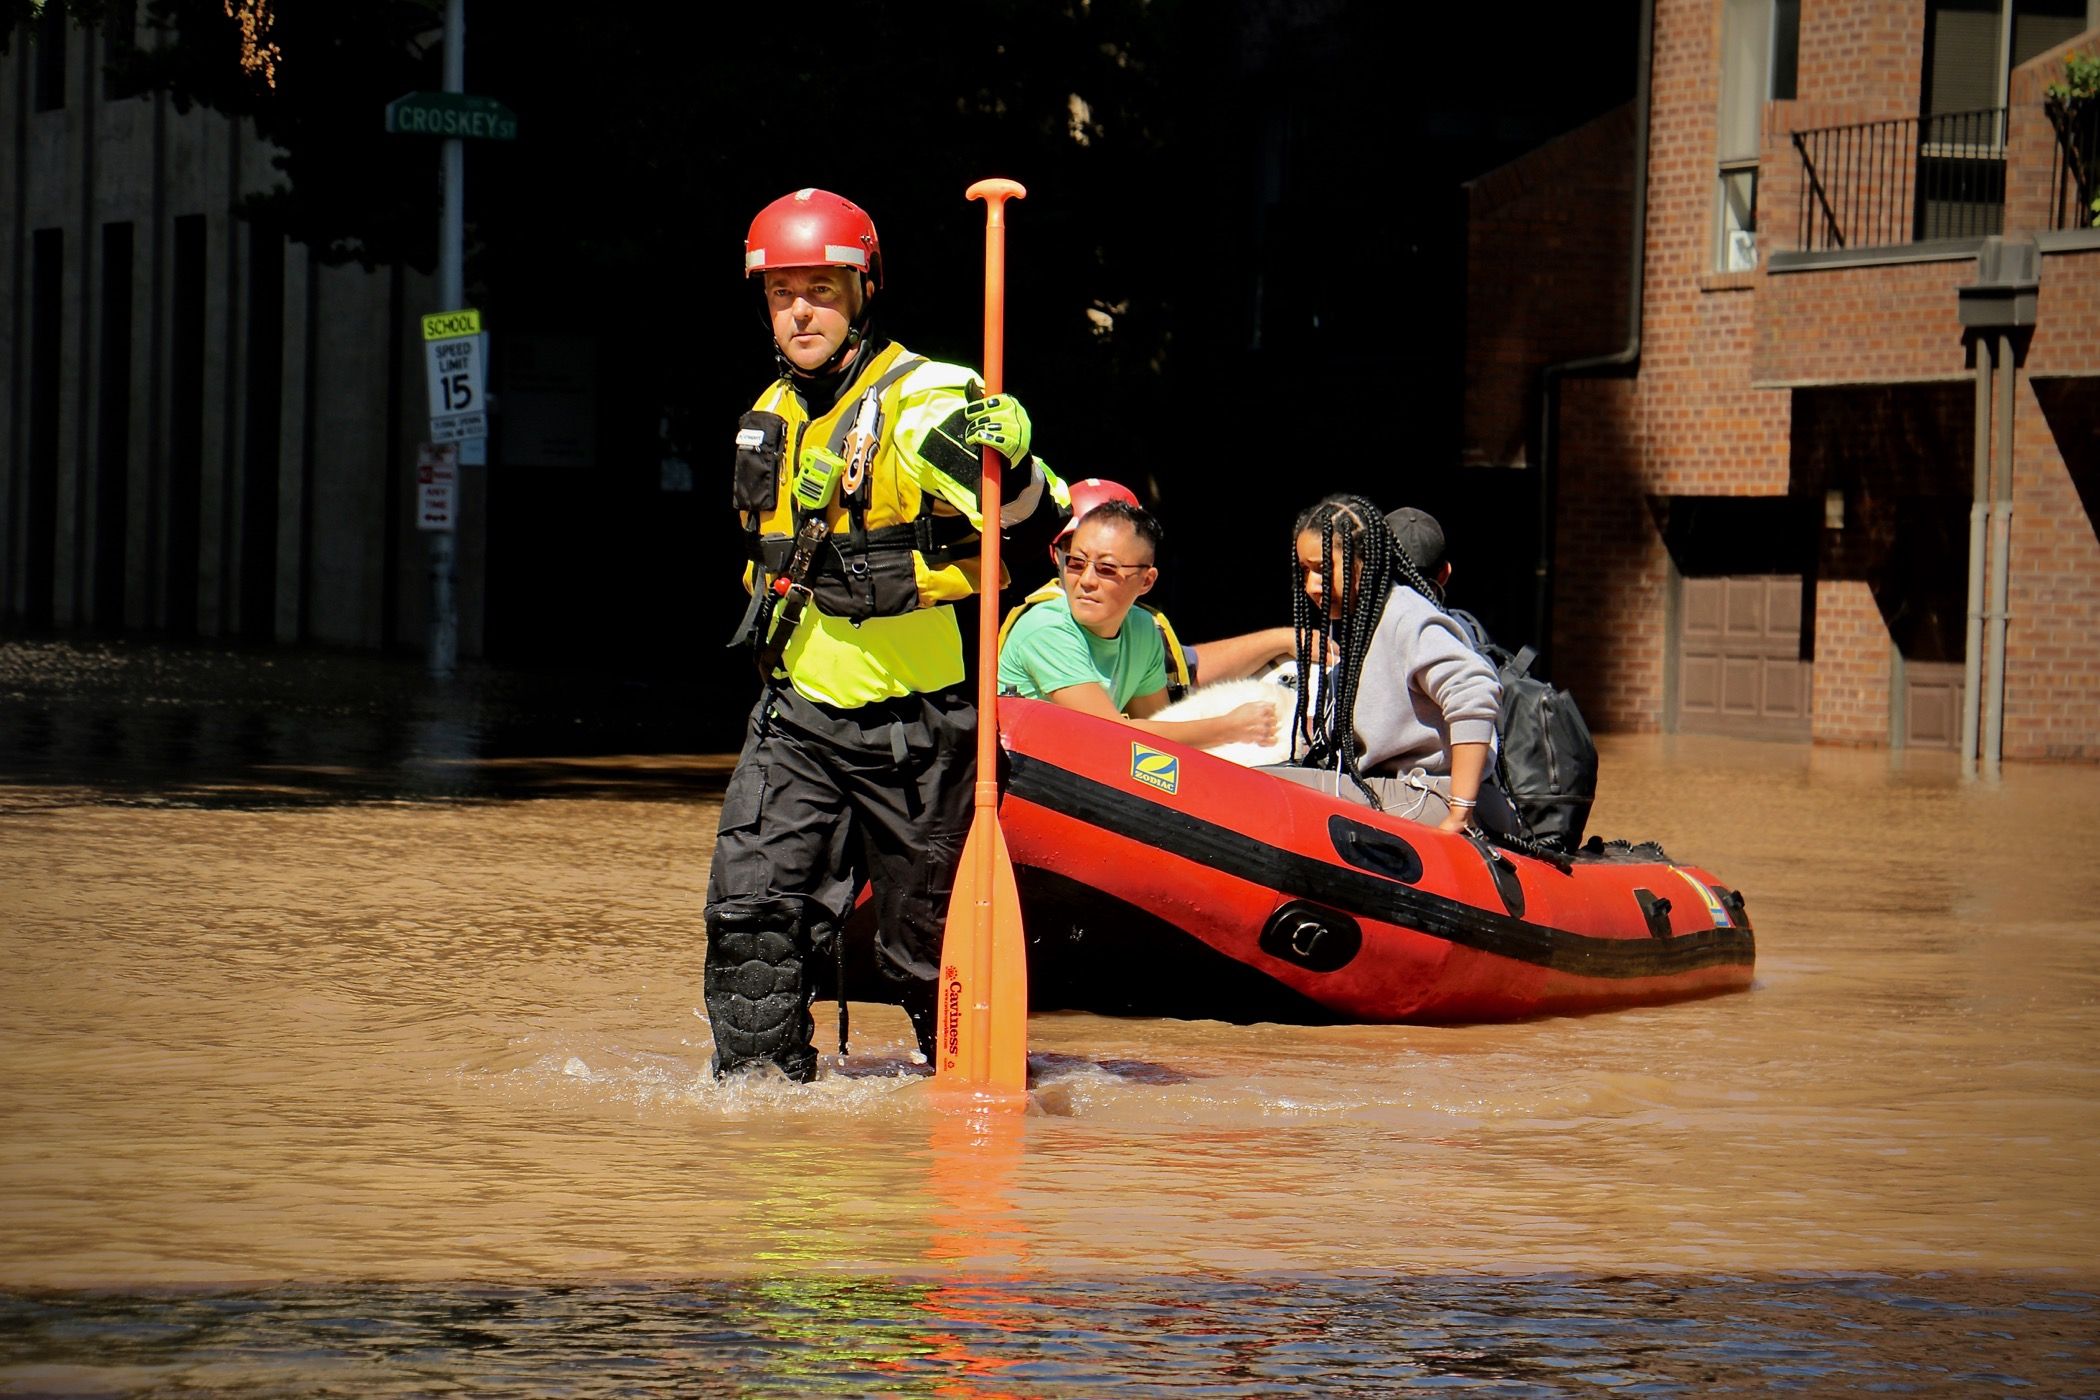 a white man in a hazard vest, hard hat, and water pants holds an oar with one hand and pulls a small inflatable rescue boat with four people in it through a flooded street. the water goes up to his shins